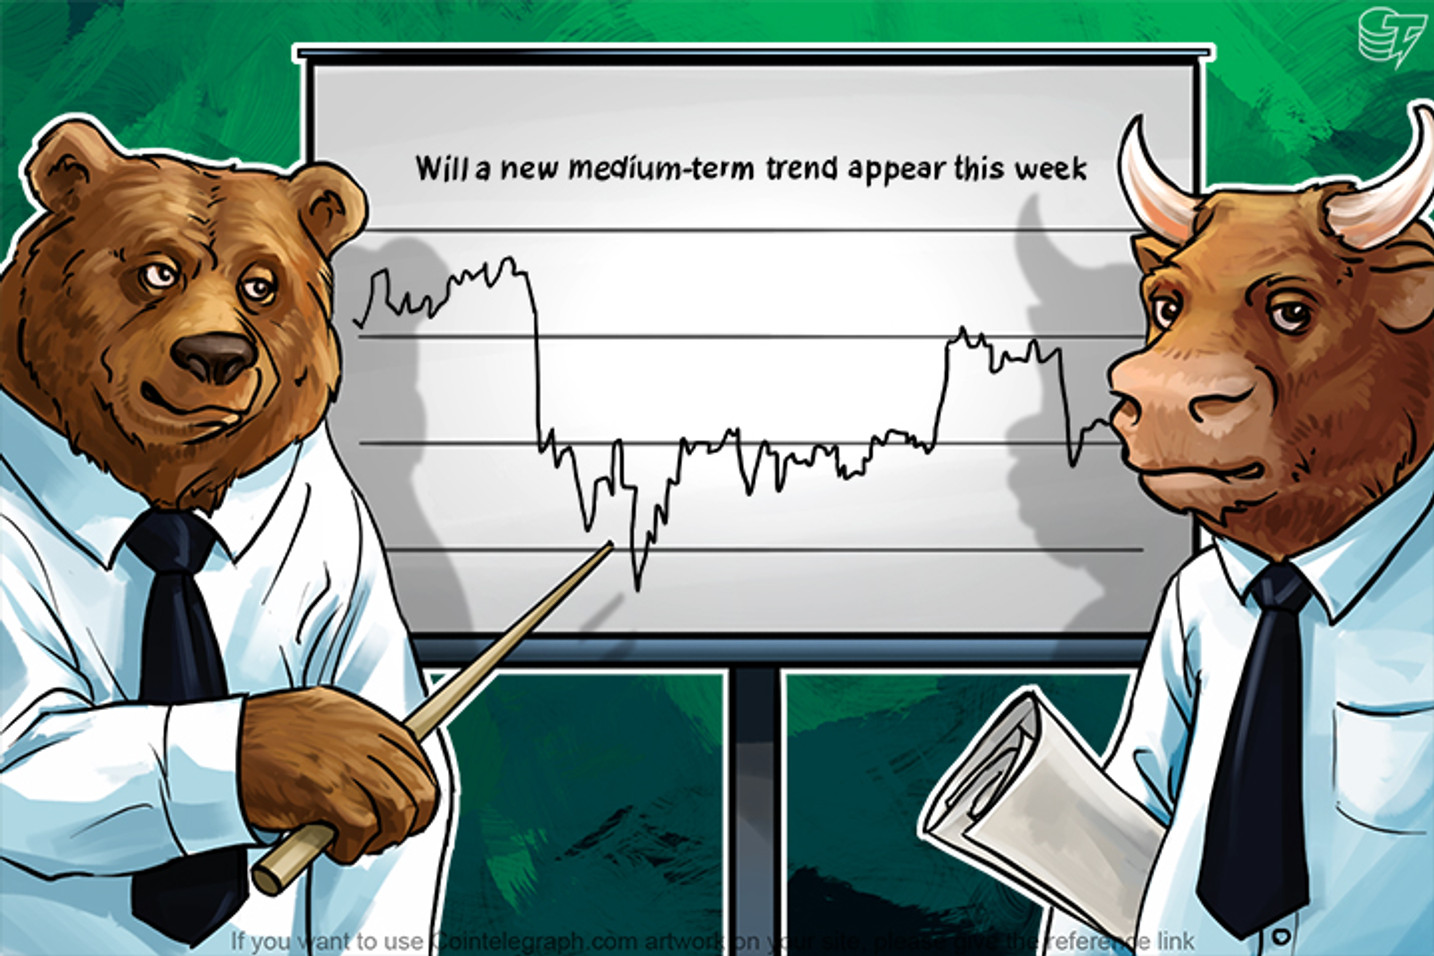 Will a New Medium-Term Trend Appear This Week?